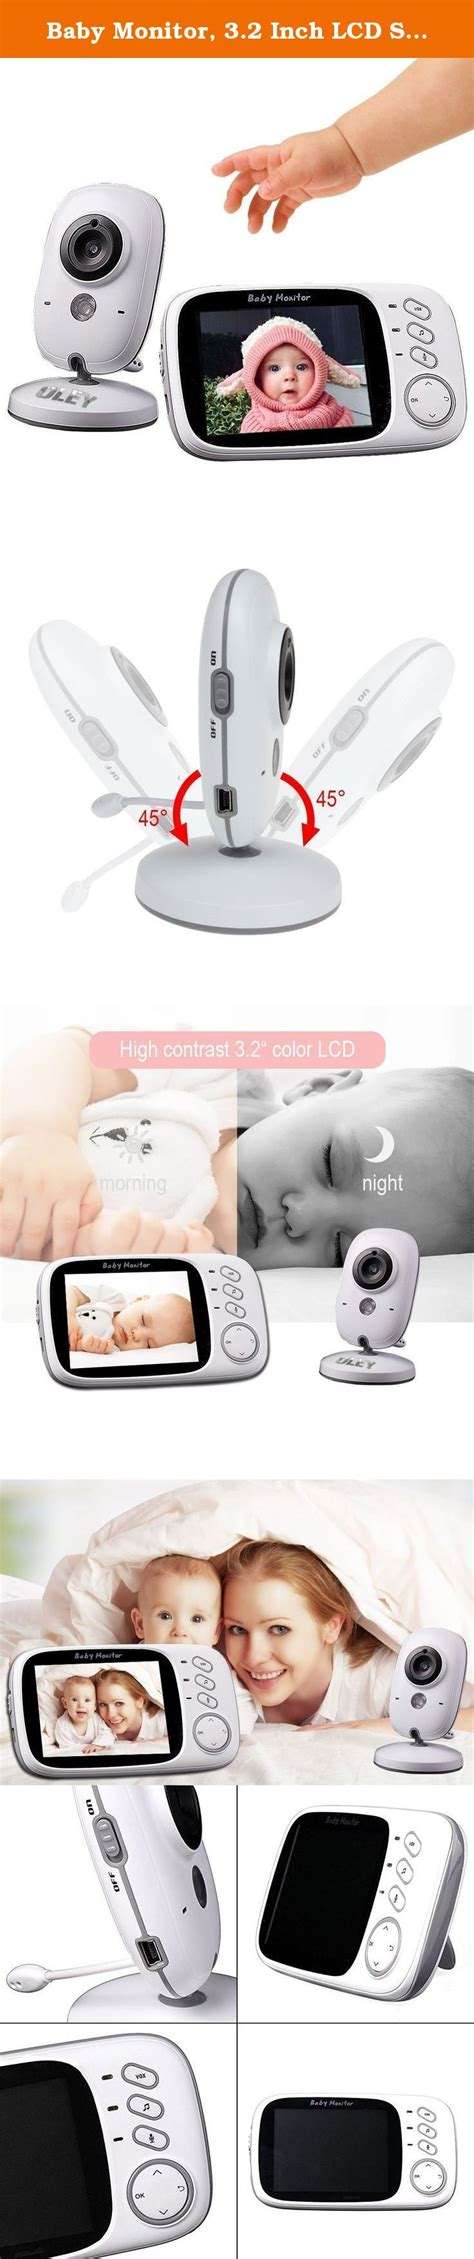 Baby Monitor, 3.2 Inch LCD Screen/Smart Camera 2.4GHz ...